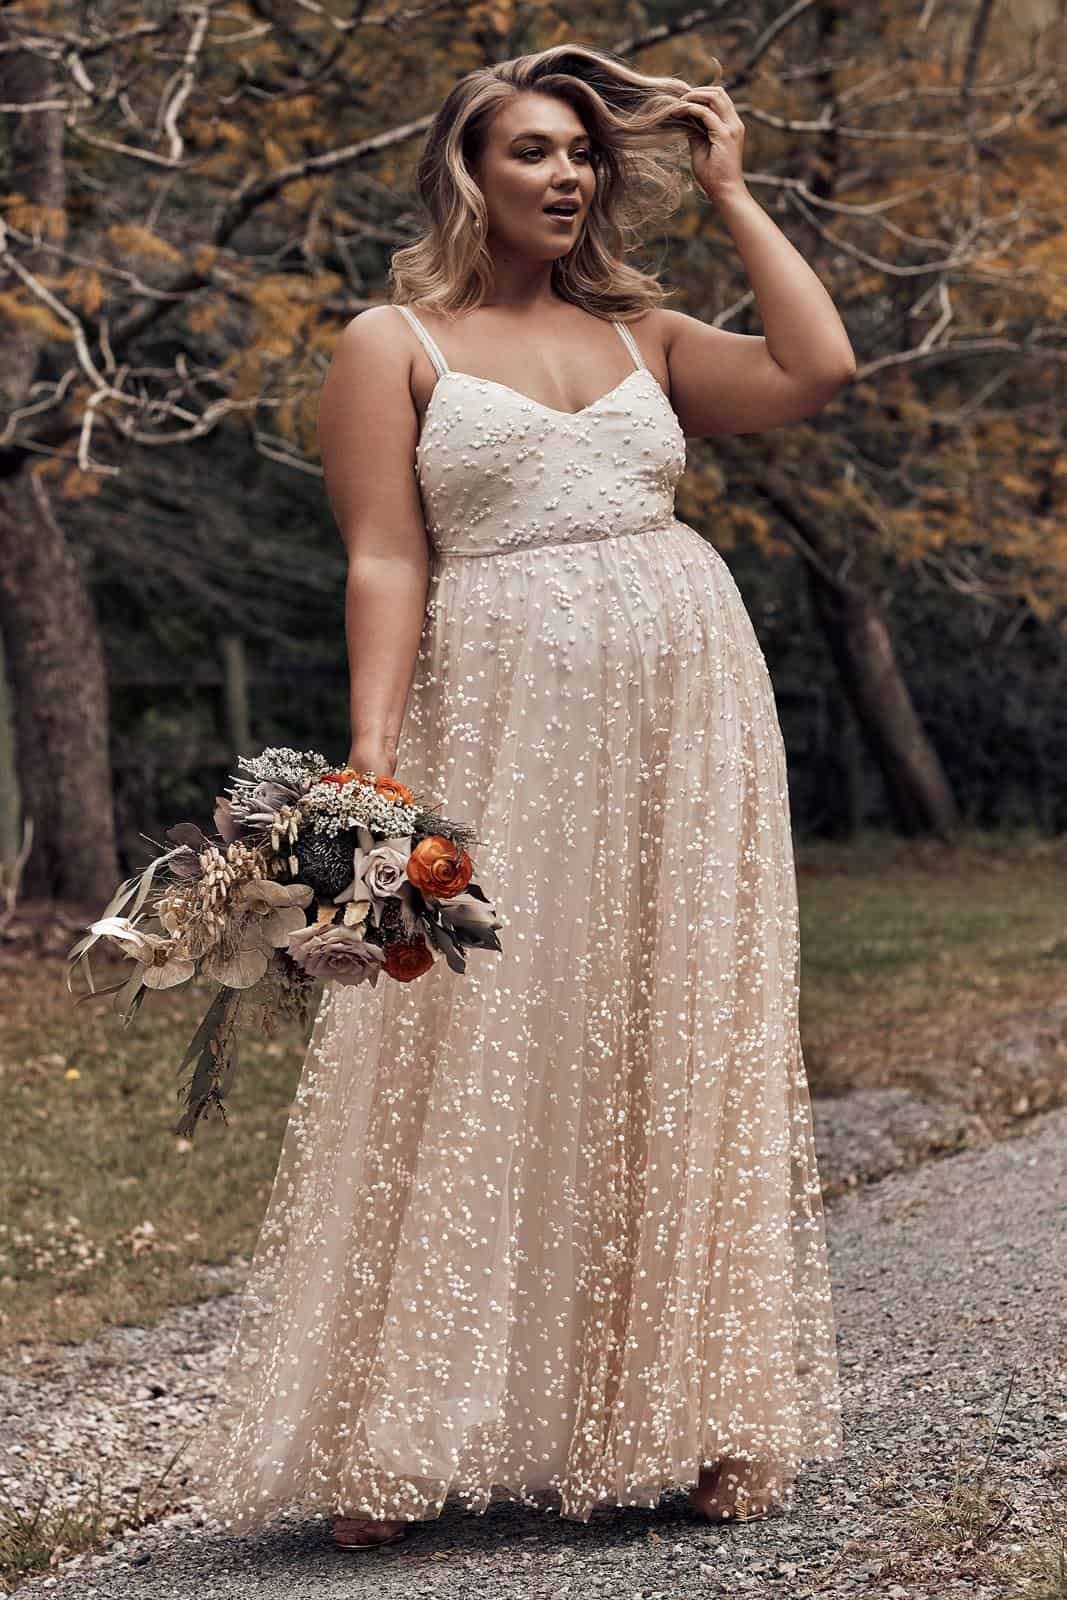 Elopement Wedding Dress for Curvy Brides Blush Embroided Beaded Dress Intimate Wedding Dress Romantic Grace Loves Lace Menha 2